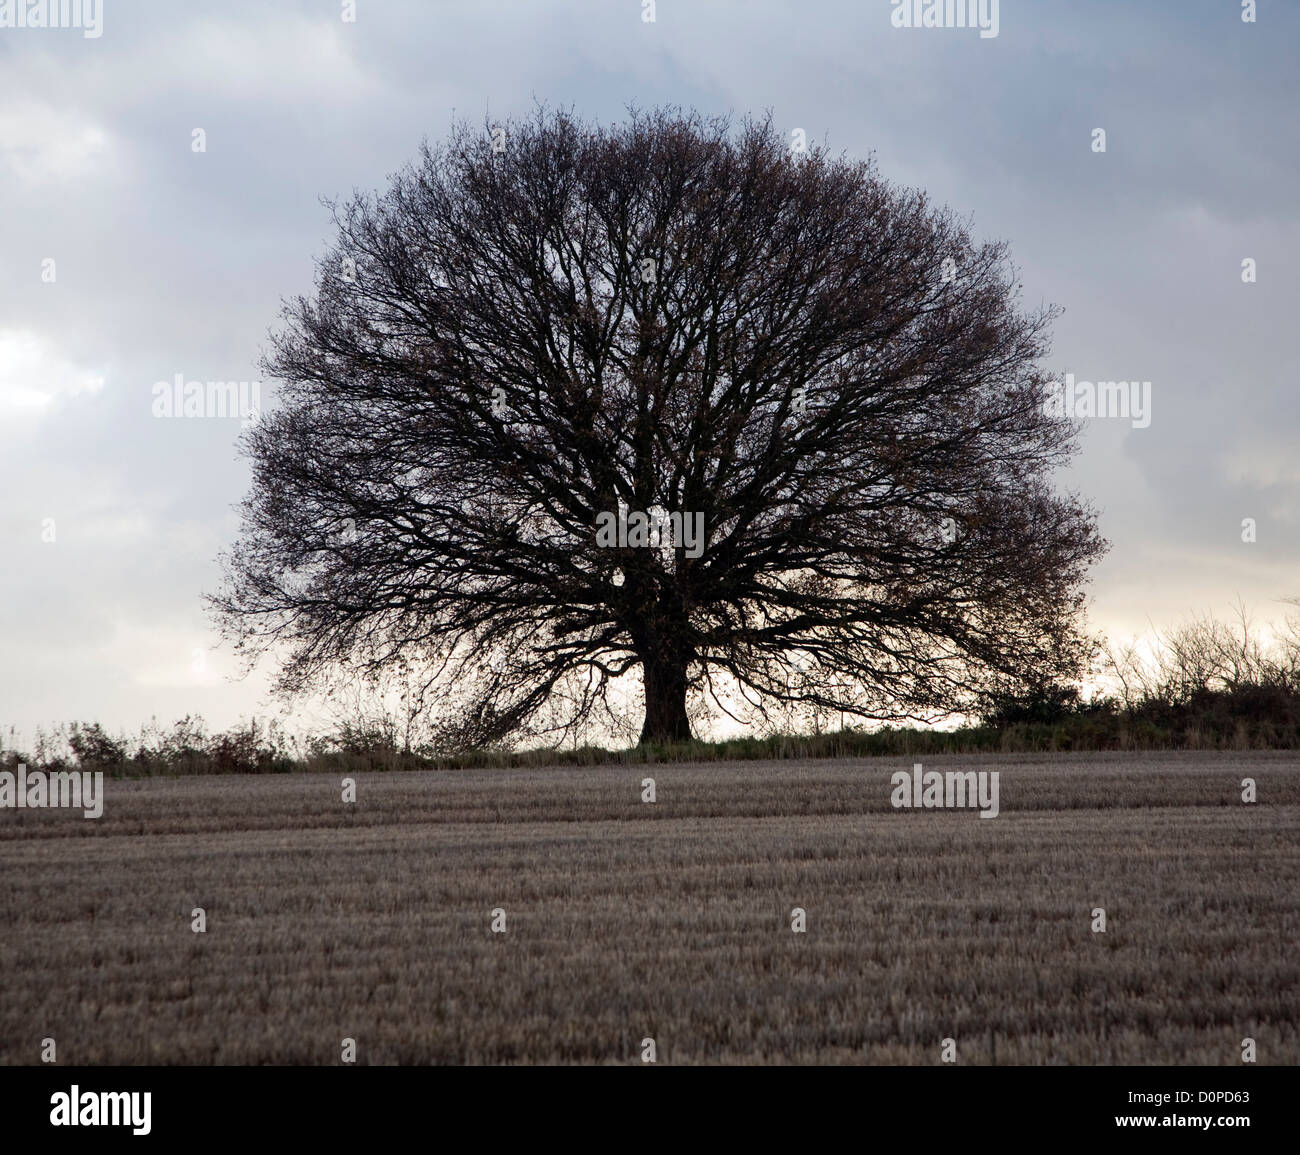 Overcast grey sky treeless small oak tree in field Sutton, Suffolk, England - Stock Image